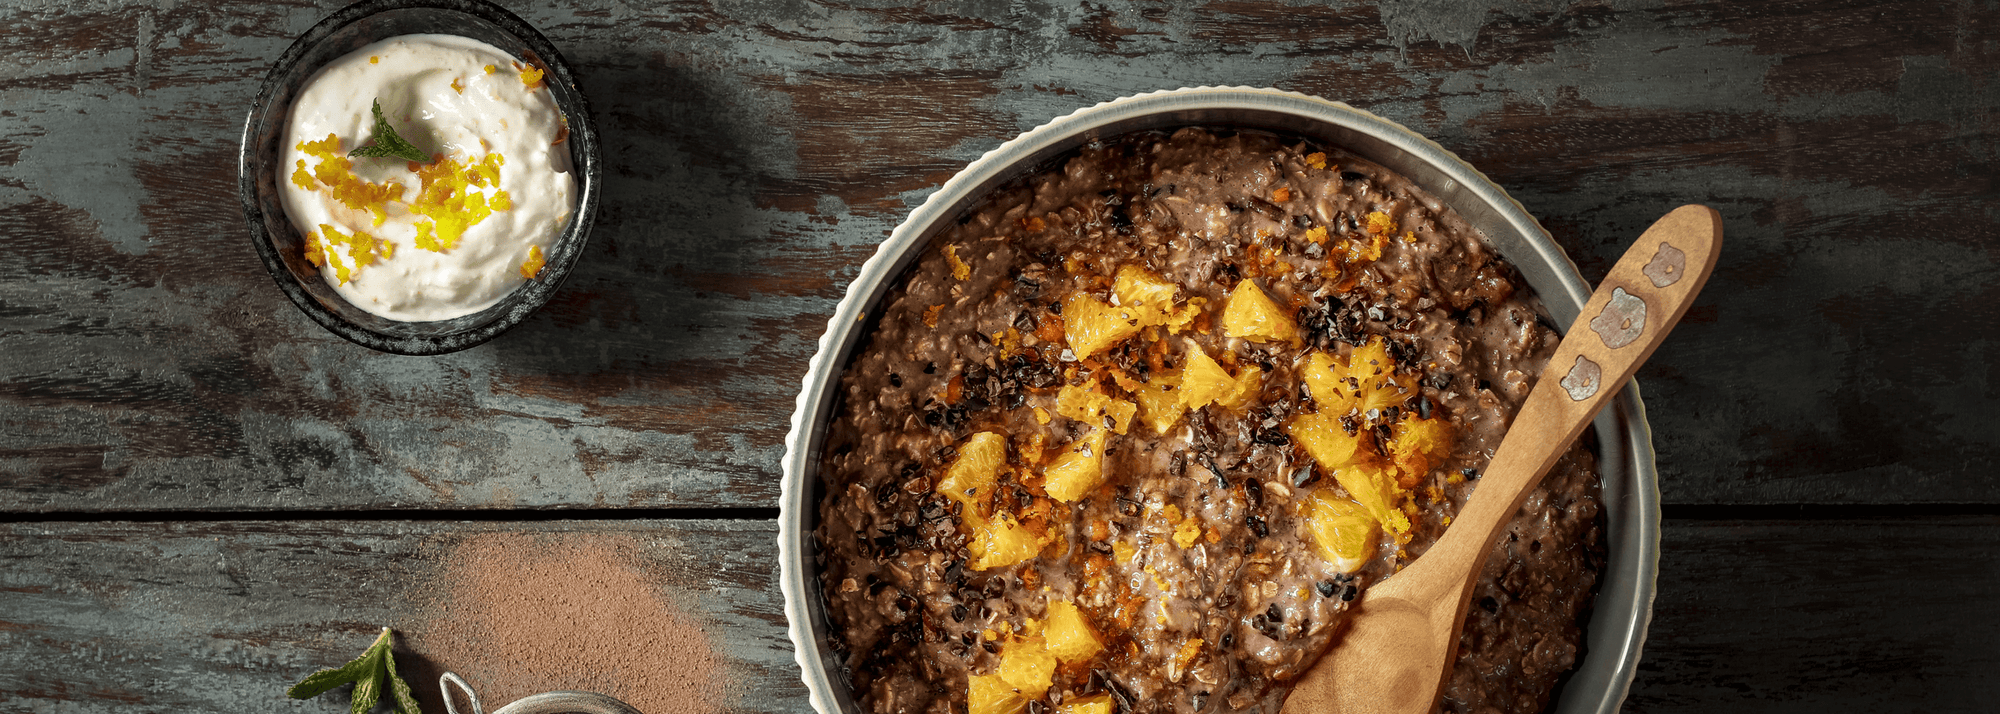 #hellochocolate: Chocolate porridge with orange kick